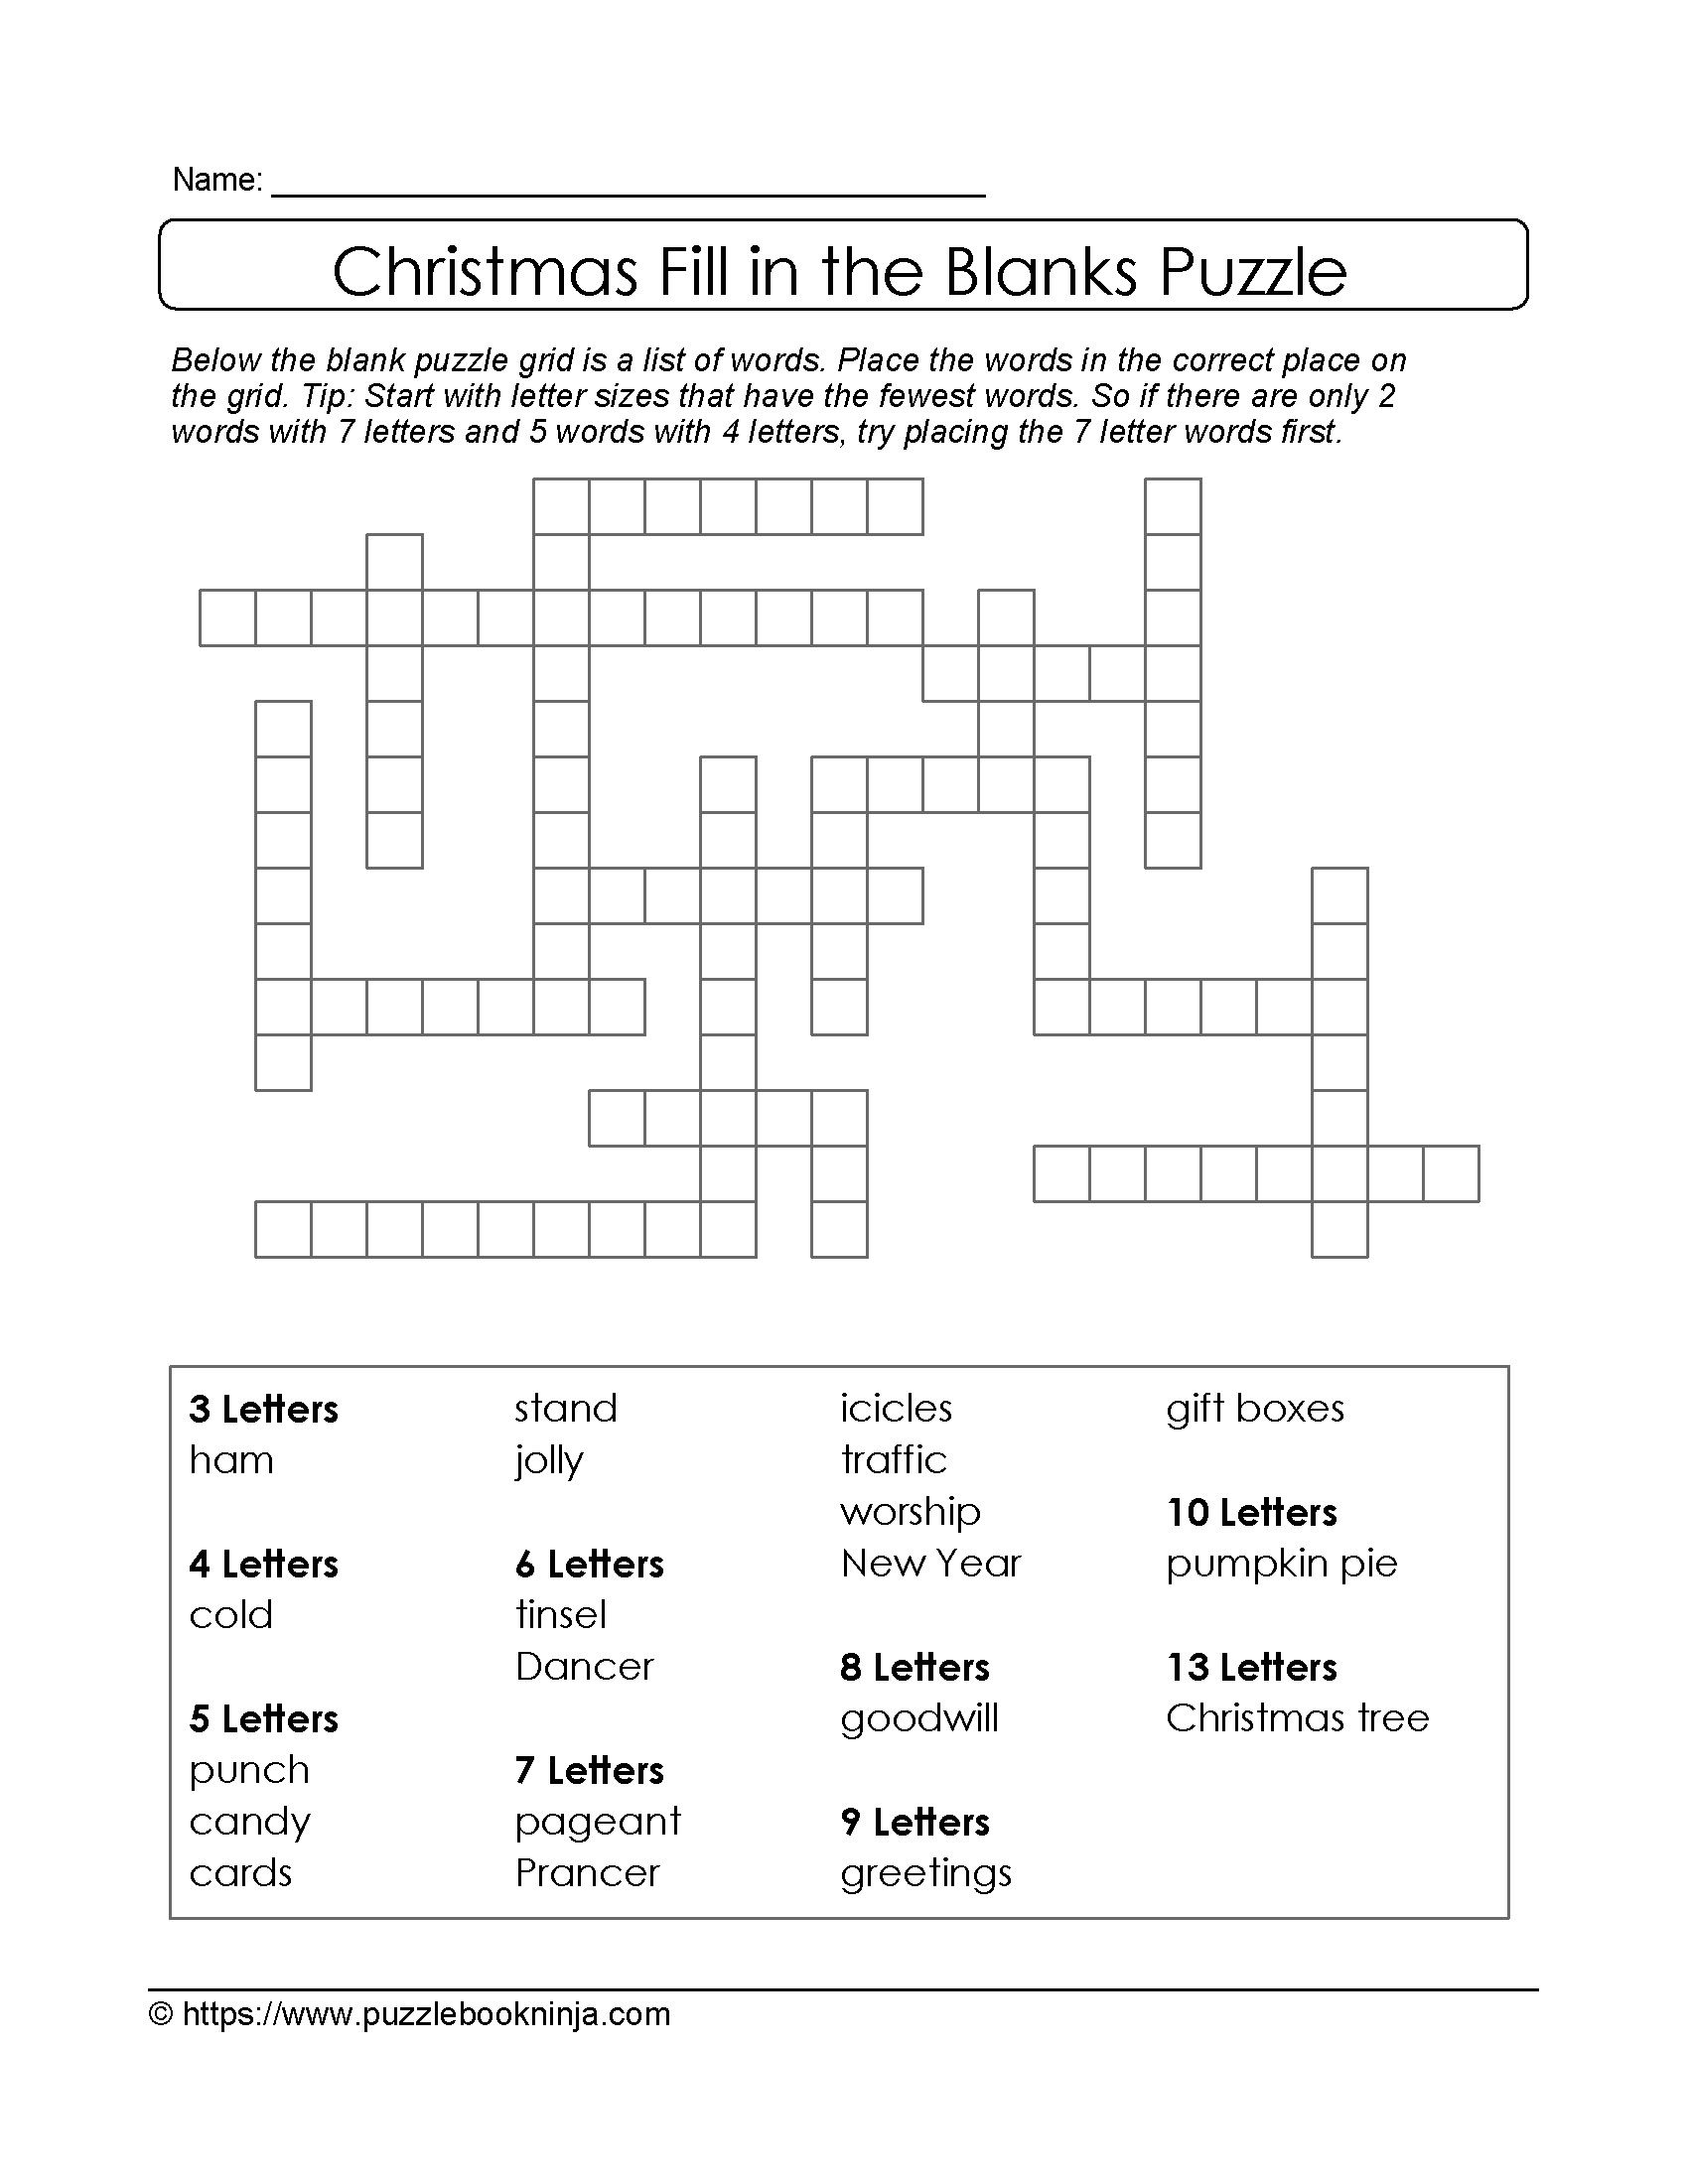 Freebie Xmas Puzzle To Print. Fill In The Blanks Crossword Like - Printable Xmas Puzzles